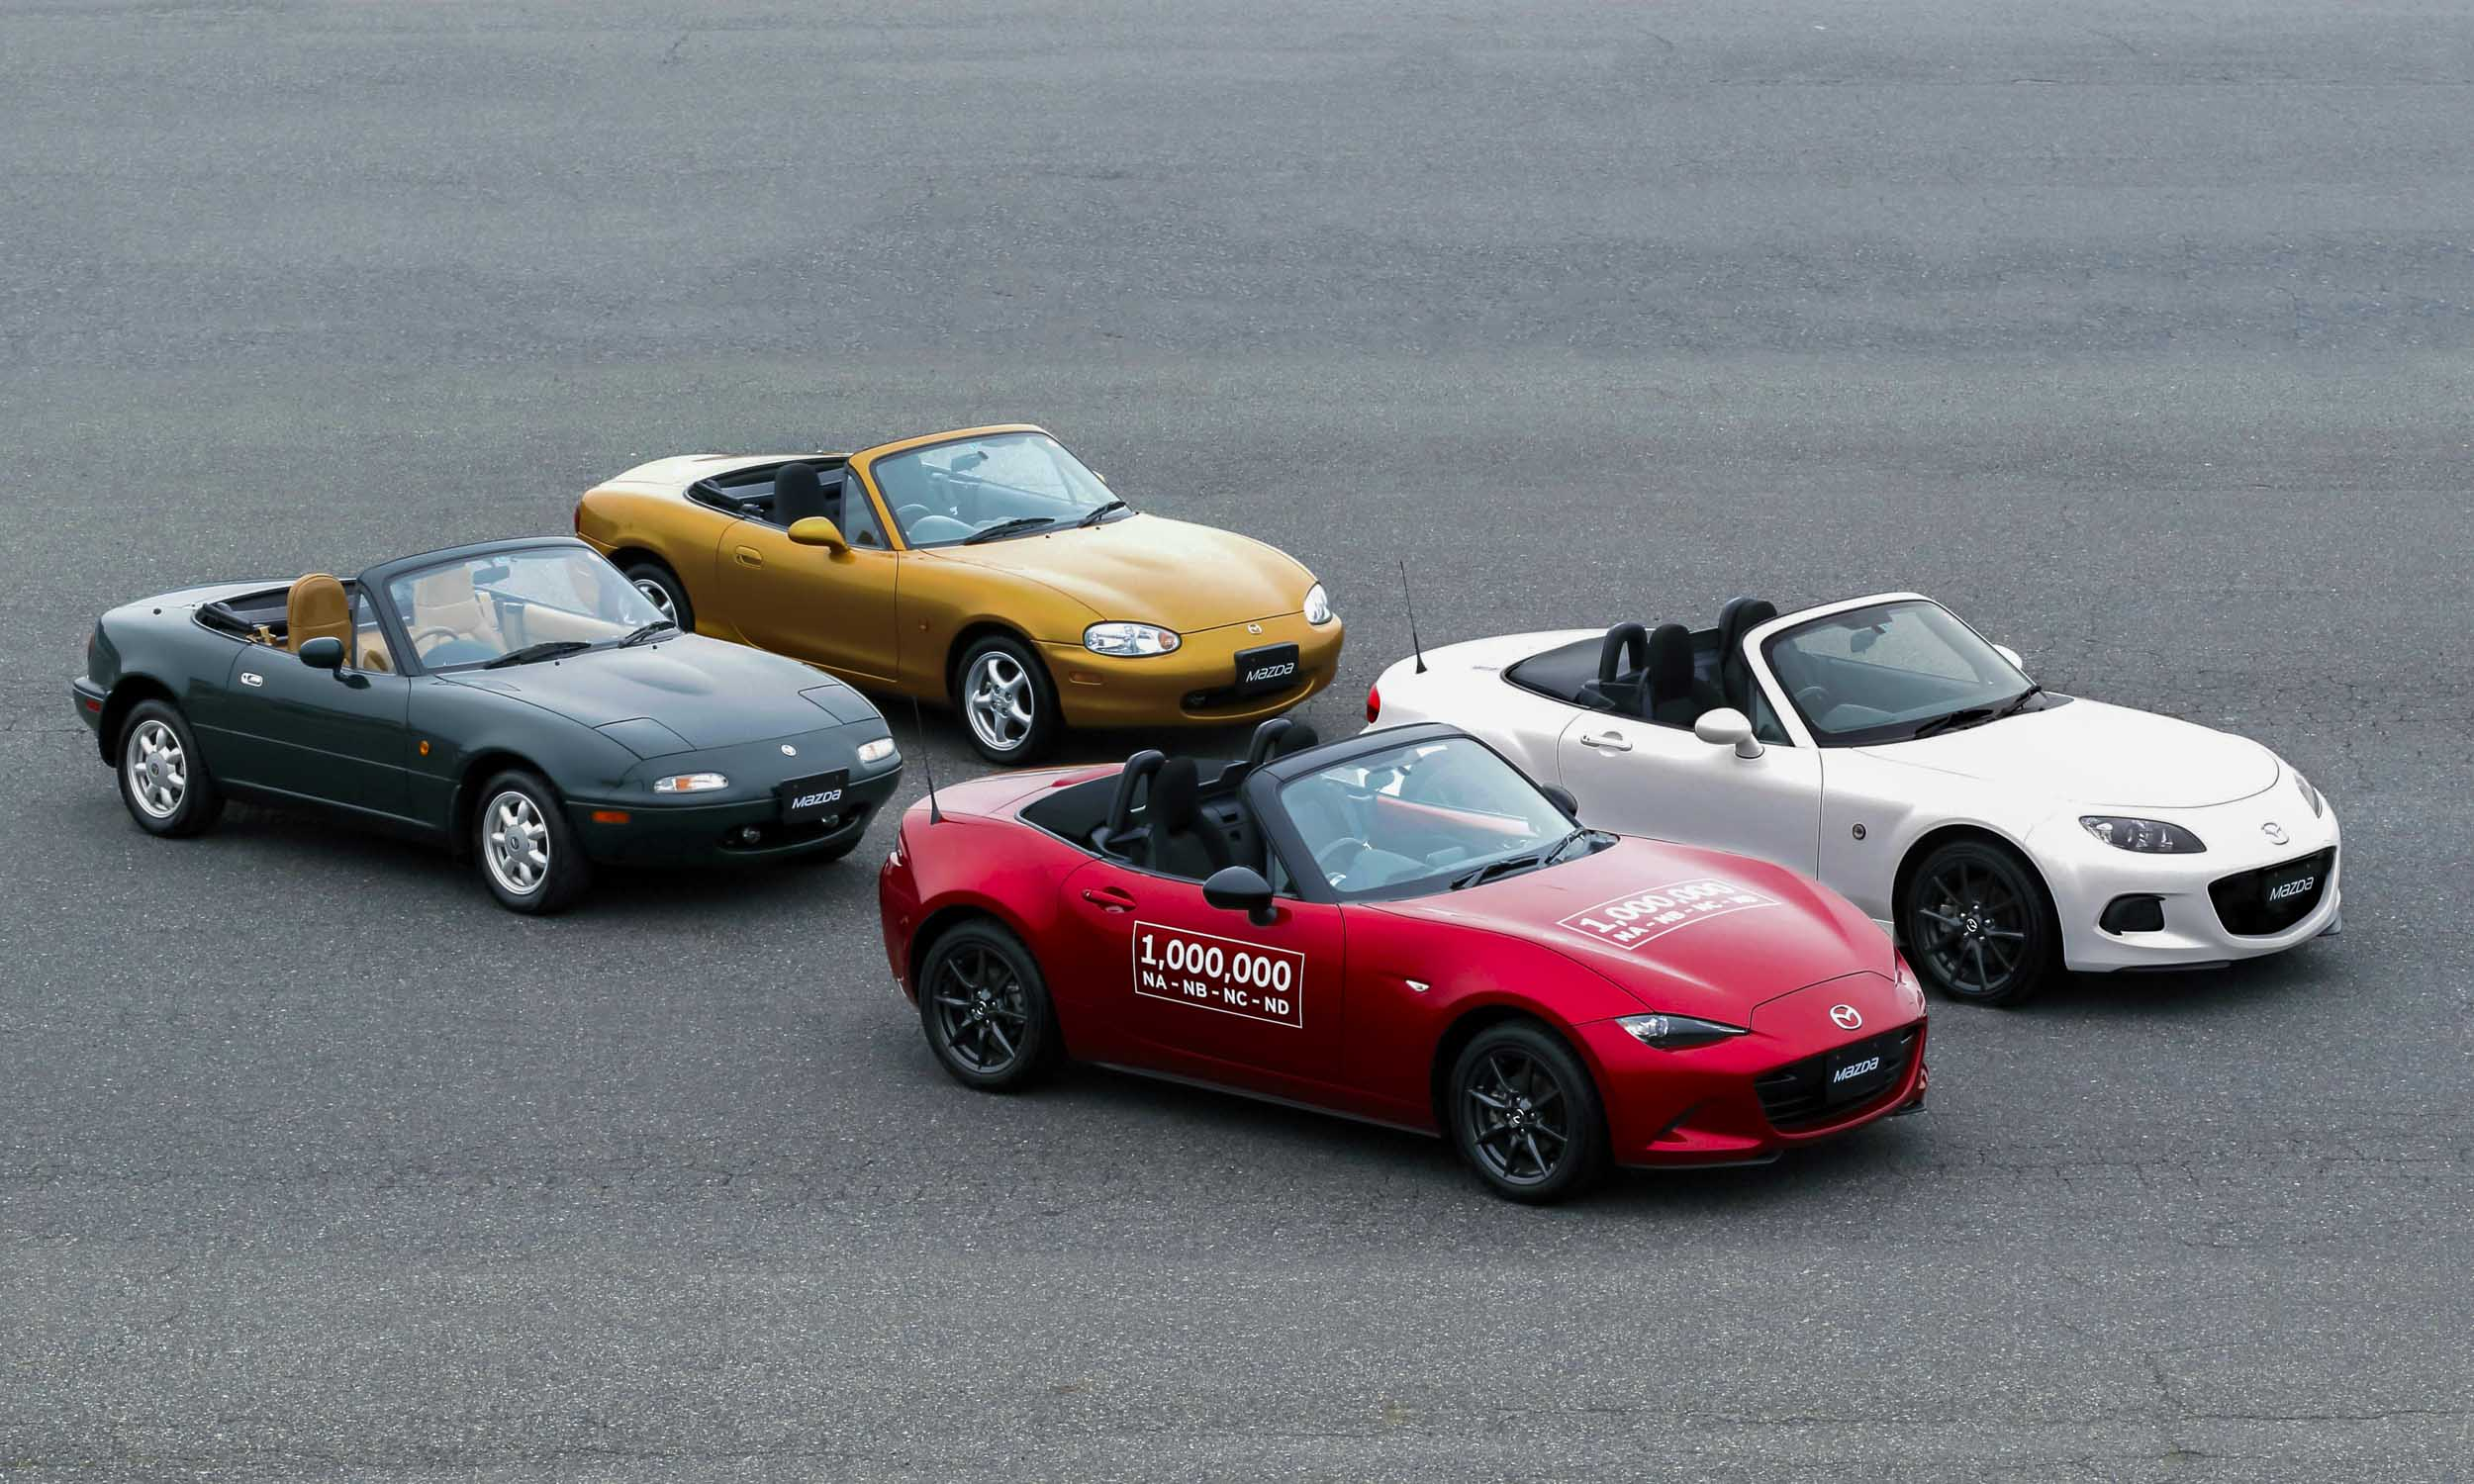 Mazda MX-5 Miata 30th Anniversary